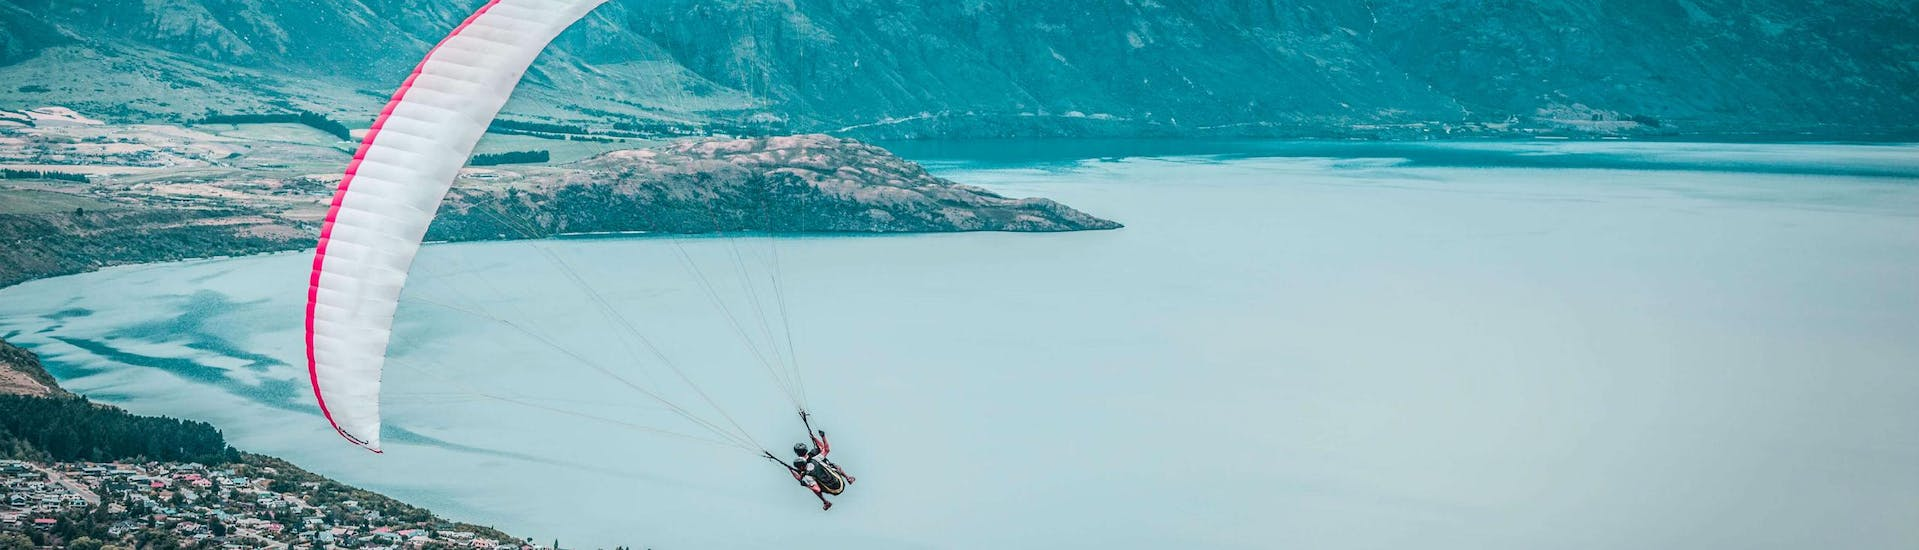 A tandem master and his passenger are flying over Lake Wakatipu while paragliding in Queenstown, New Zealand.